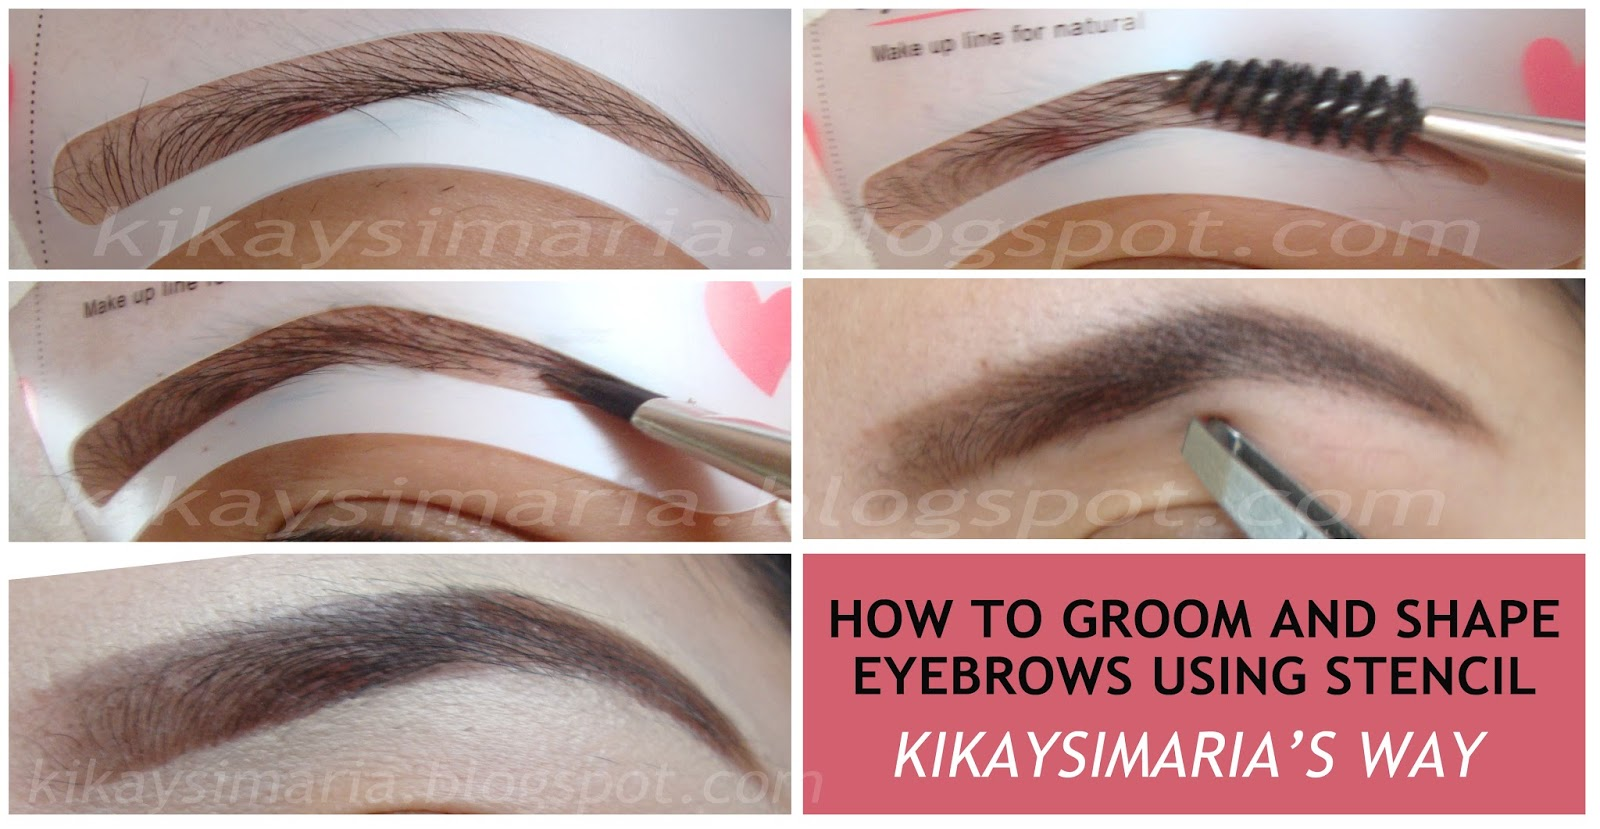 Kikaysimaria How To Shape And Groom Eyebrows Using Stencils